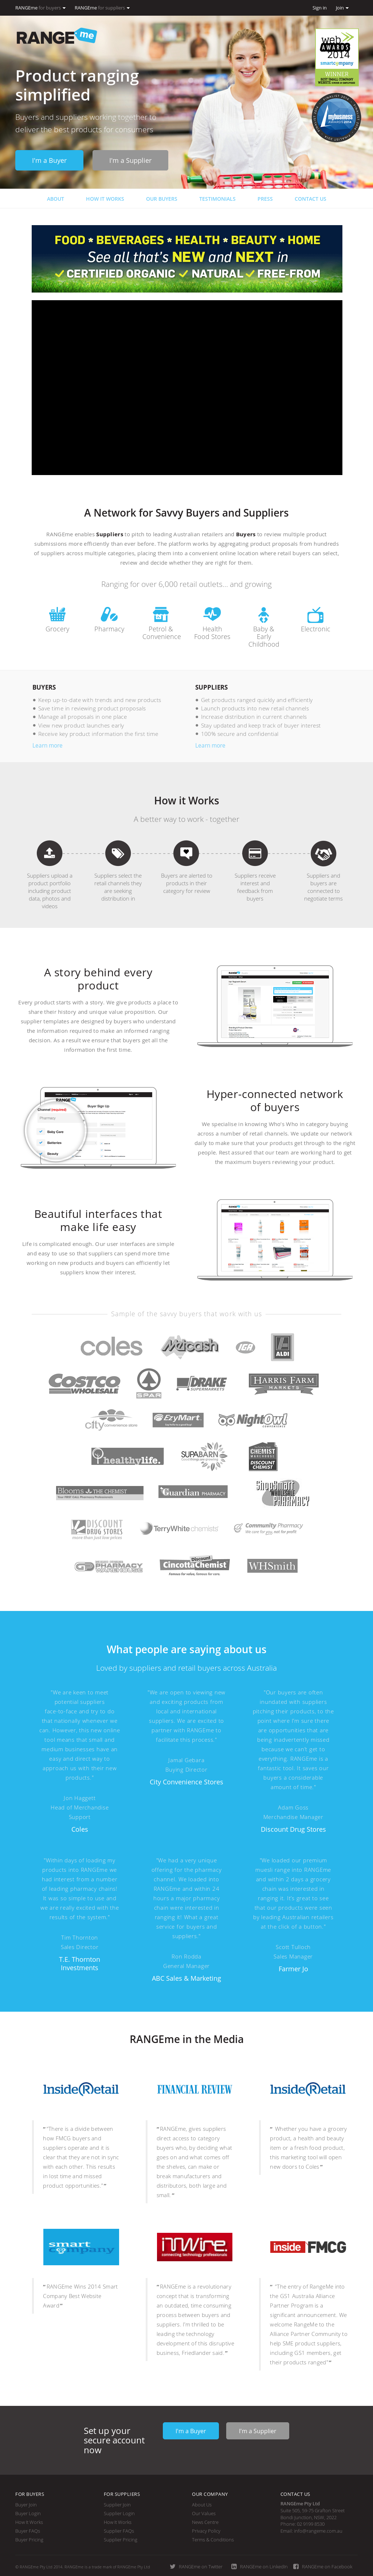 RANGEme Competitors, Revenue and Employees - Owler Company Profile